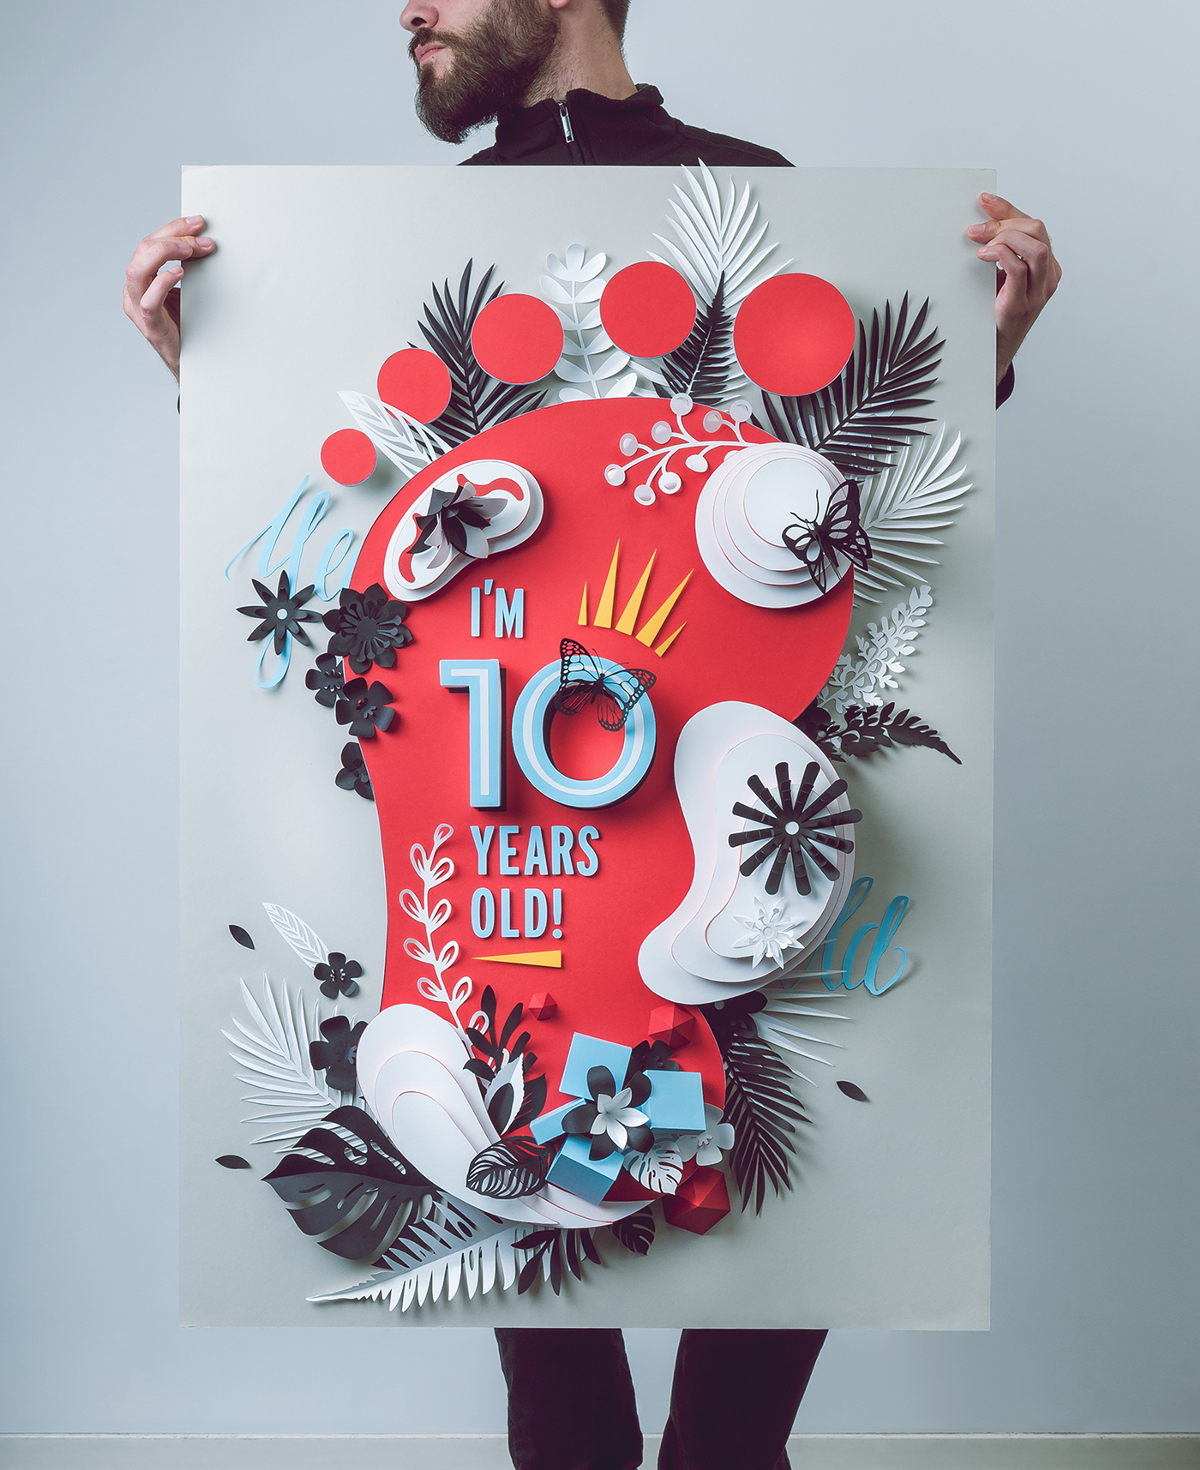 Poster design top 10 - Find This Pin And More On Cool Website Designs By Ochsnerbranddes